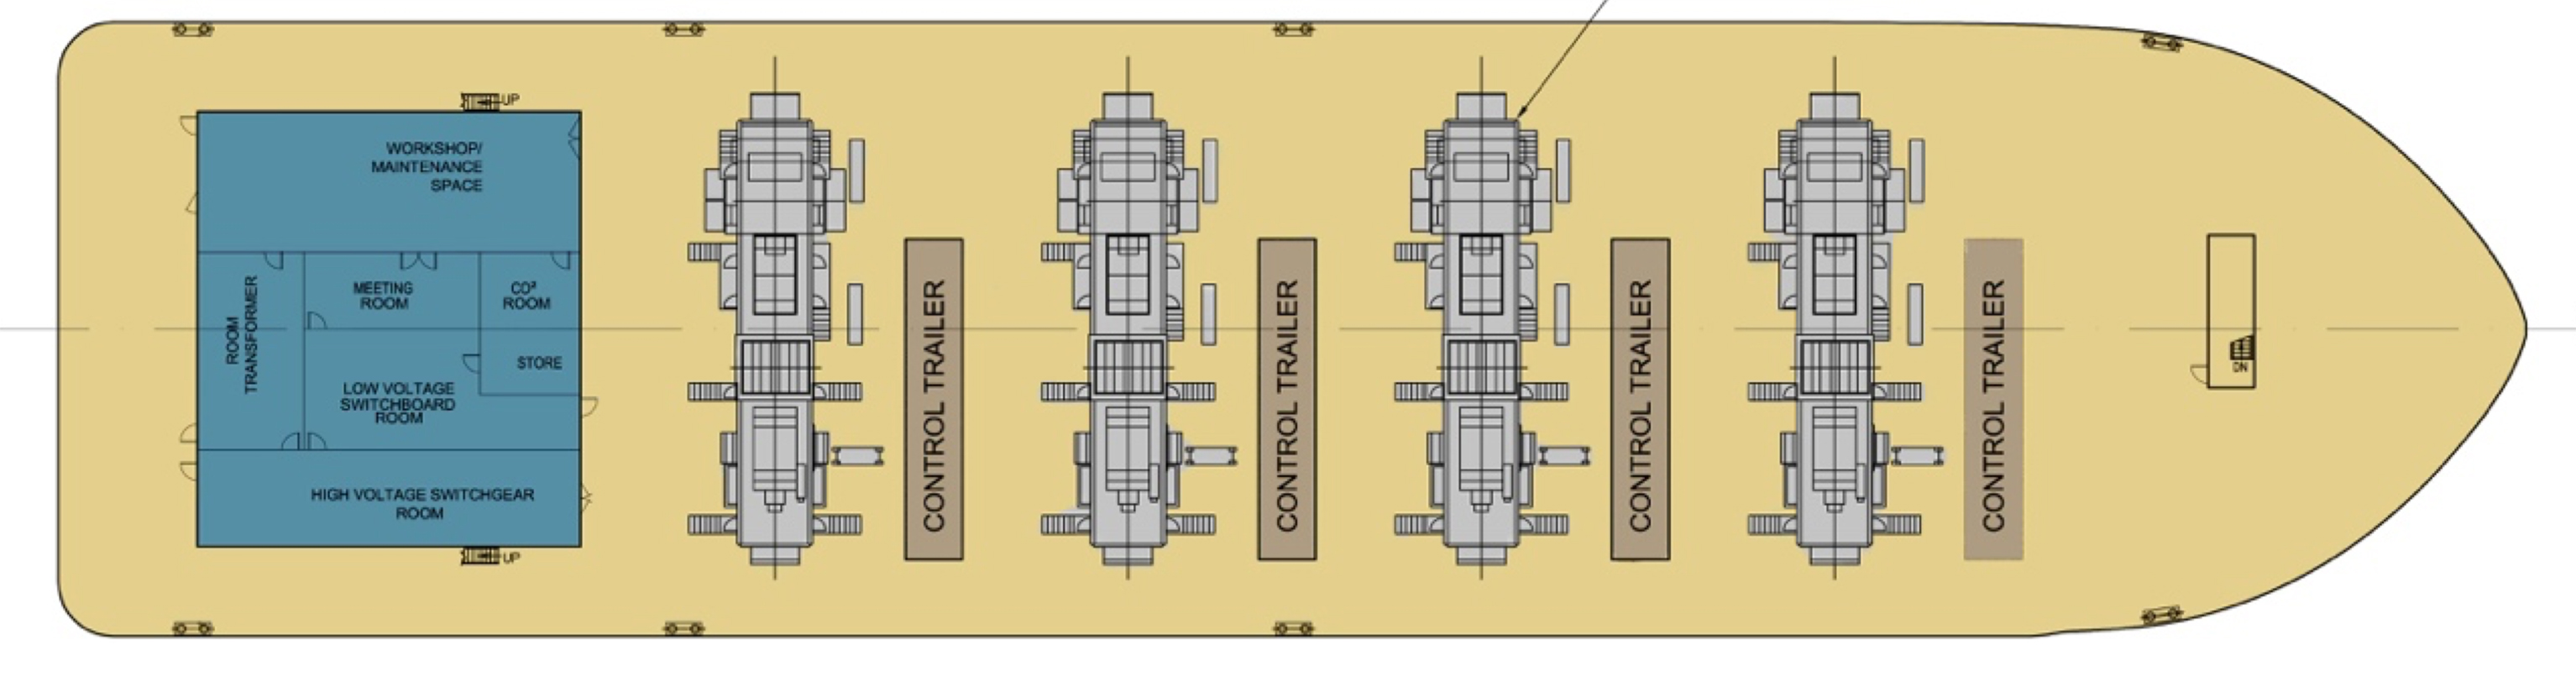 Power Barge: 120 MW Turbine Configuration Layout